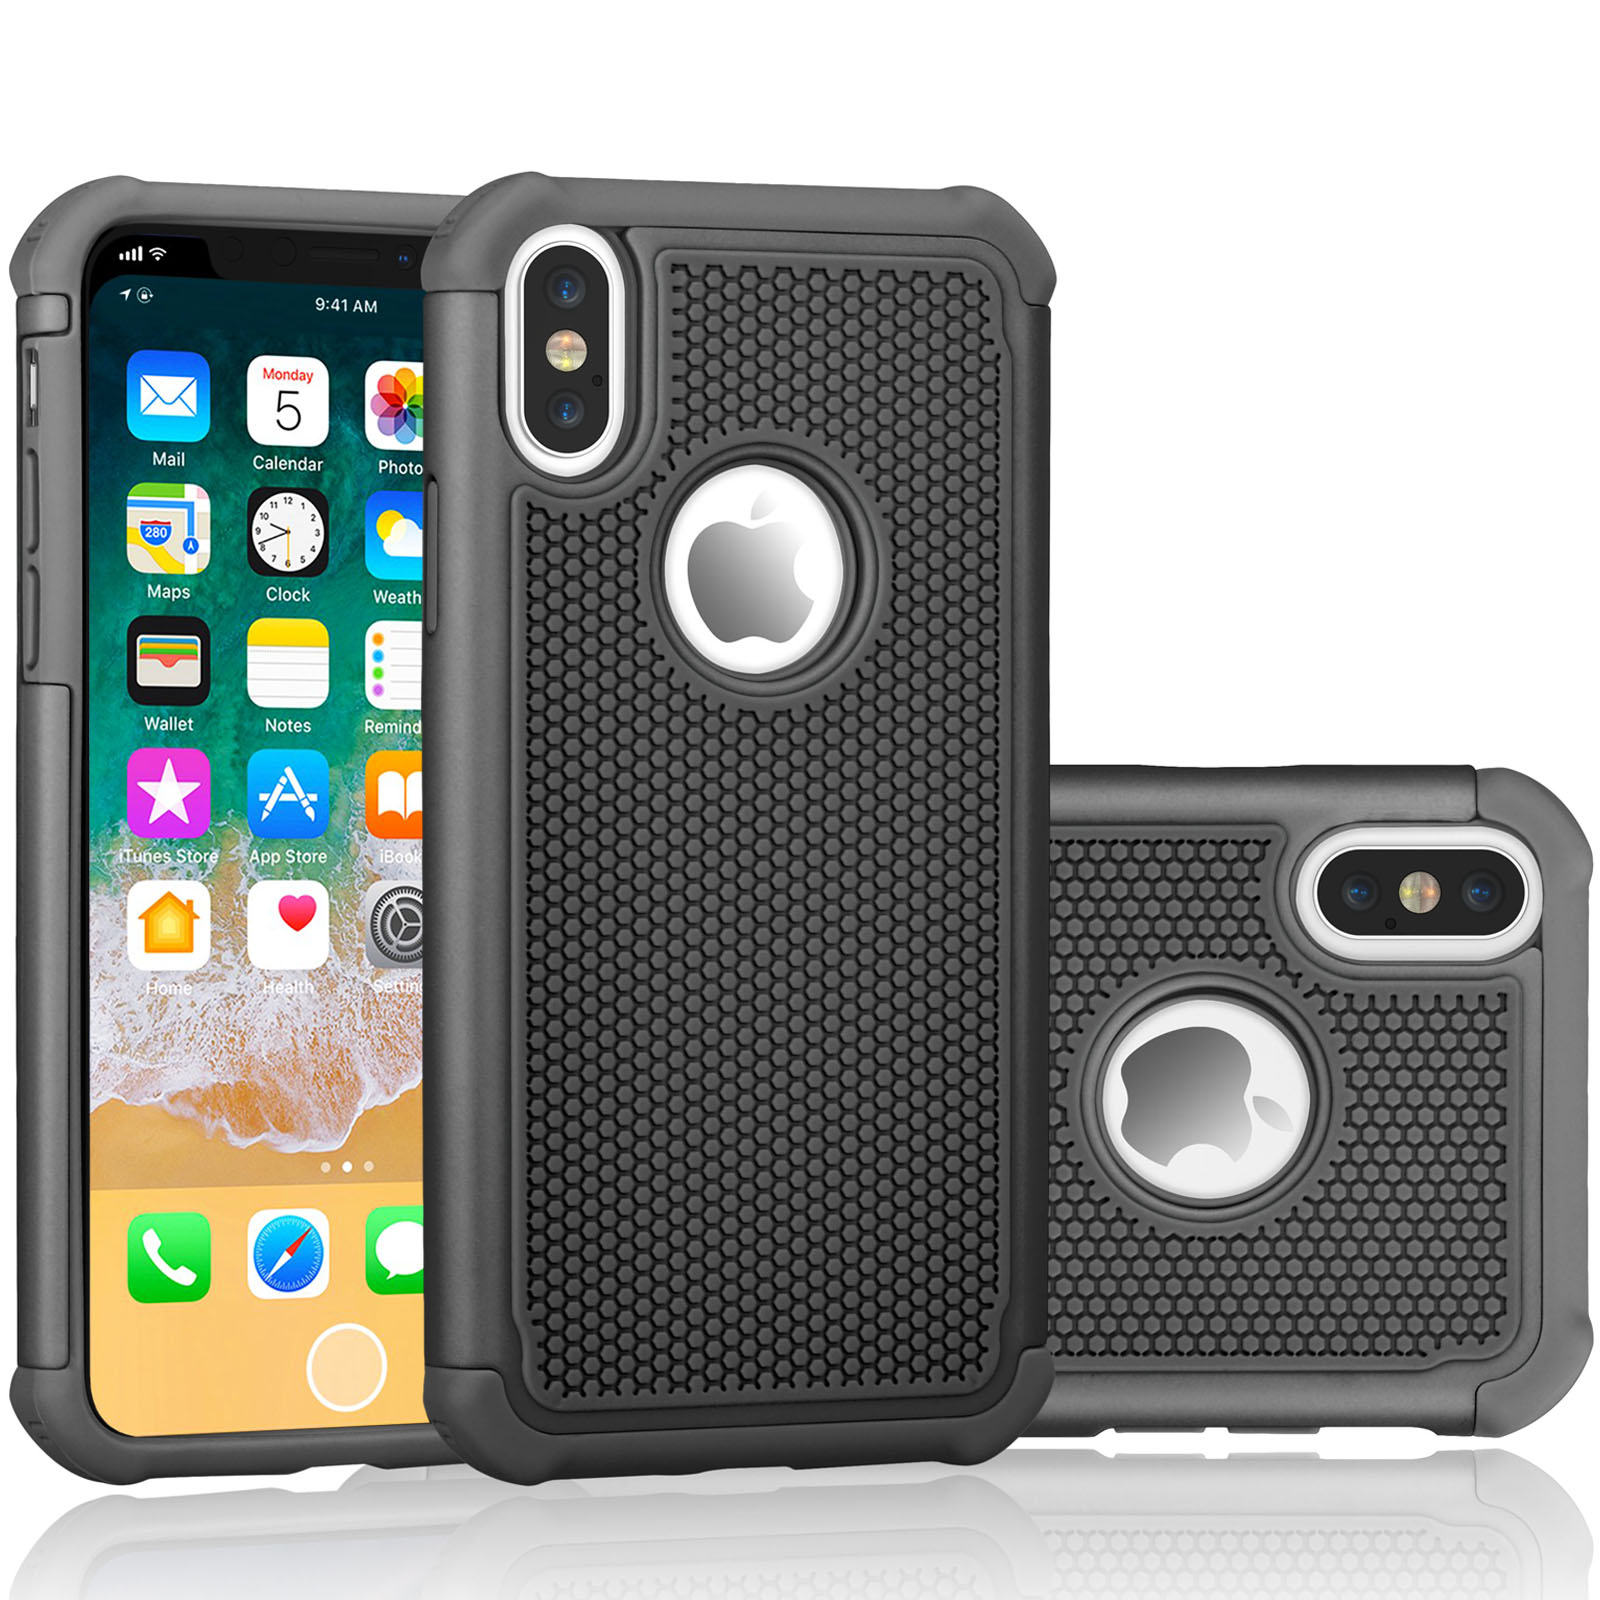 iPhone X Case, iPhone X Cute Case, Tekcoo [Tmajor] Shock Absorbing [Turquoise/Grey] Rubber Silicone & Plastic Scratch Resistant Bumper Grip Rugged Hard Cases Cover For Apple iPhone X (5.8 inch)